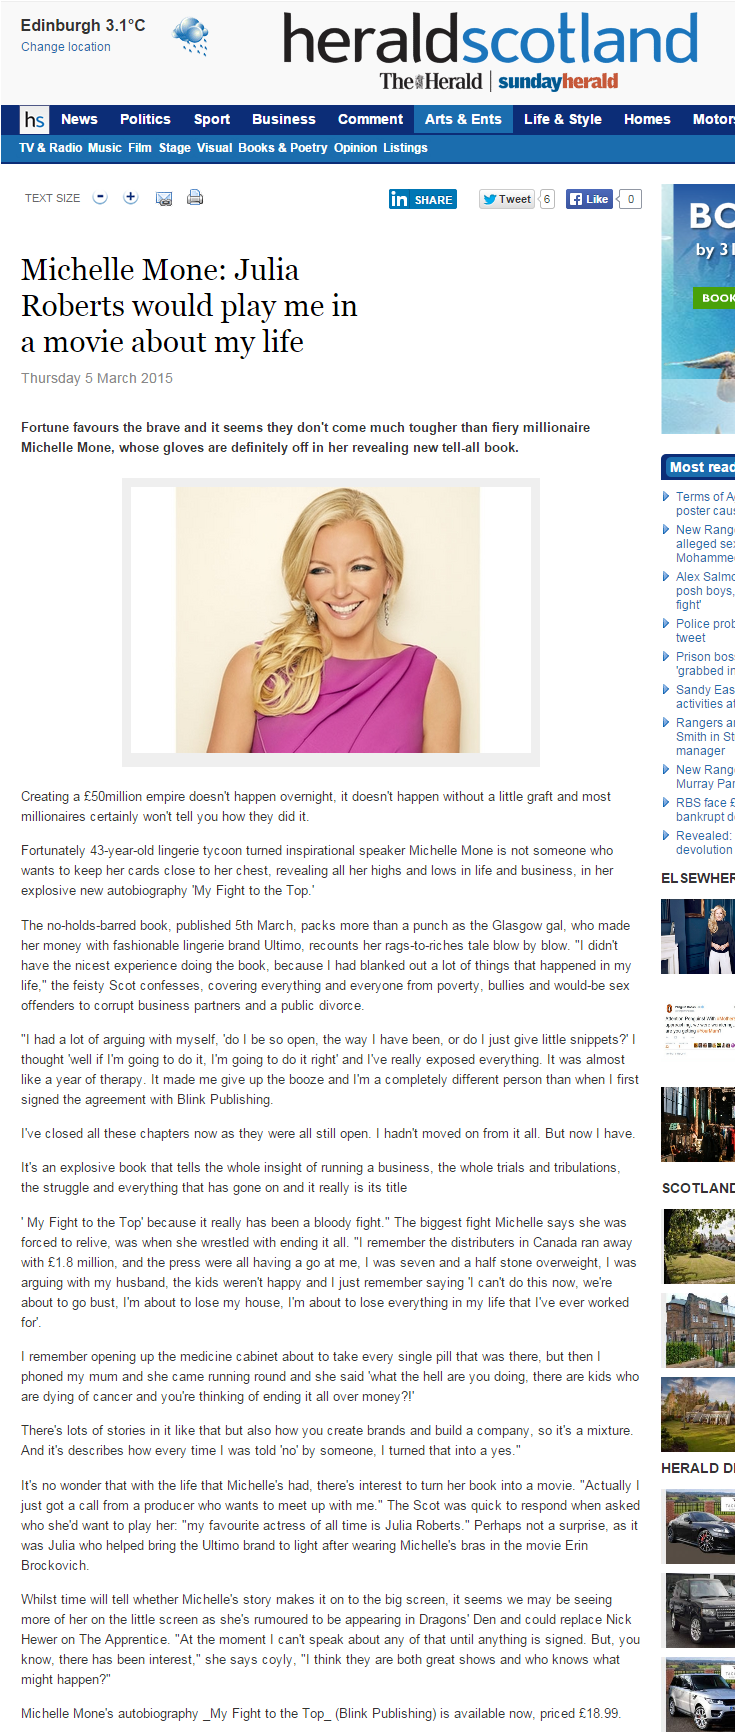 March 2015_Michelle Mone_ Julia Roberts would play_heraldscotland